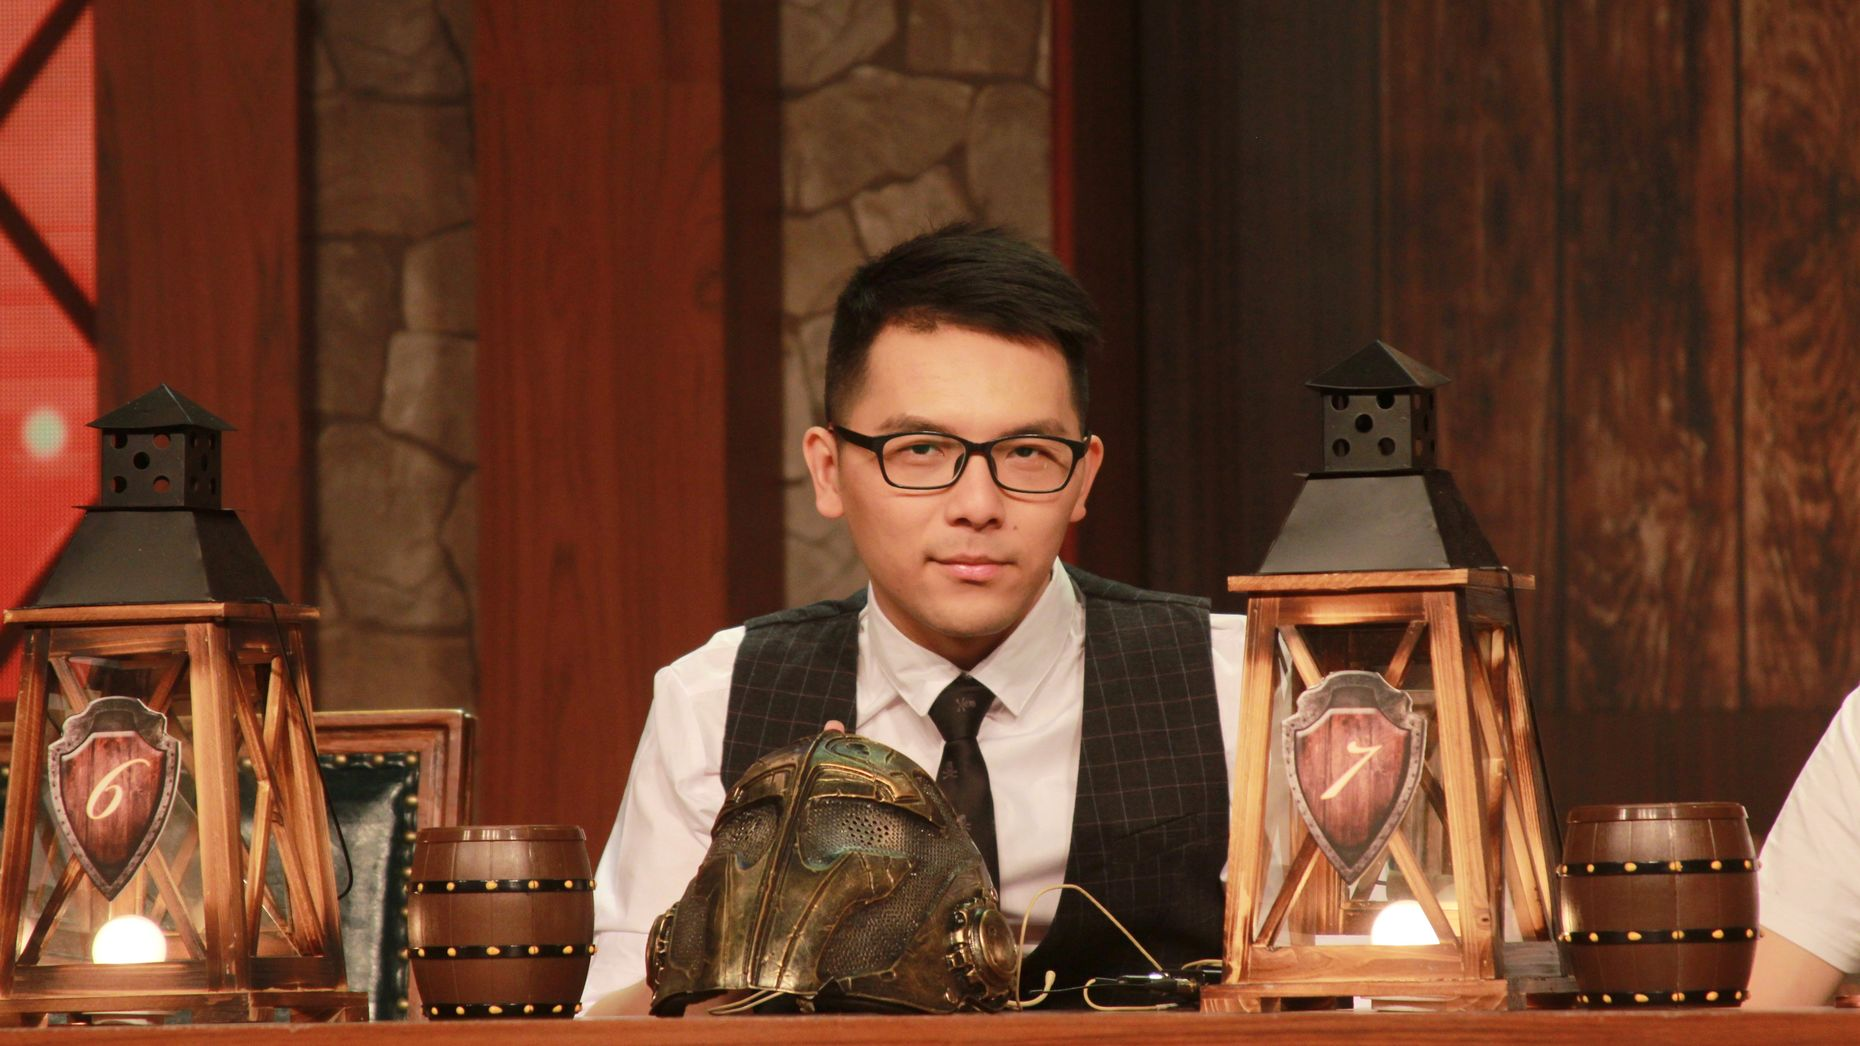 Jiang Feng, who goes by the online handle Zhijian, on Zhanqi TV's Werewolf Program Lying Man. Photo by Zhanqi TV.